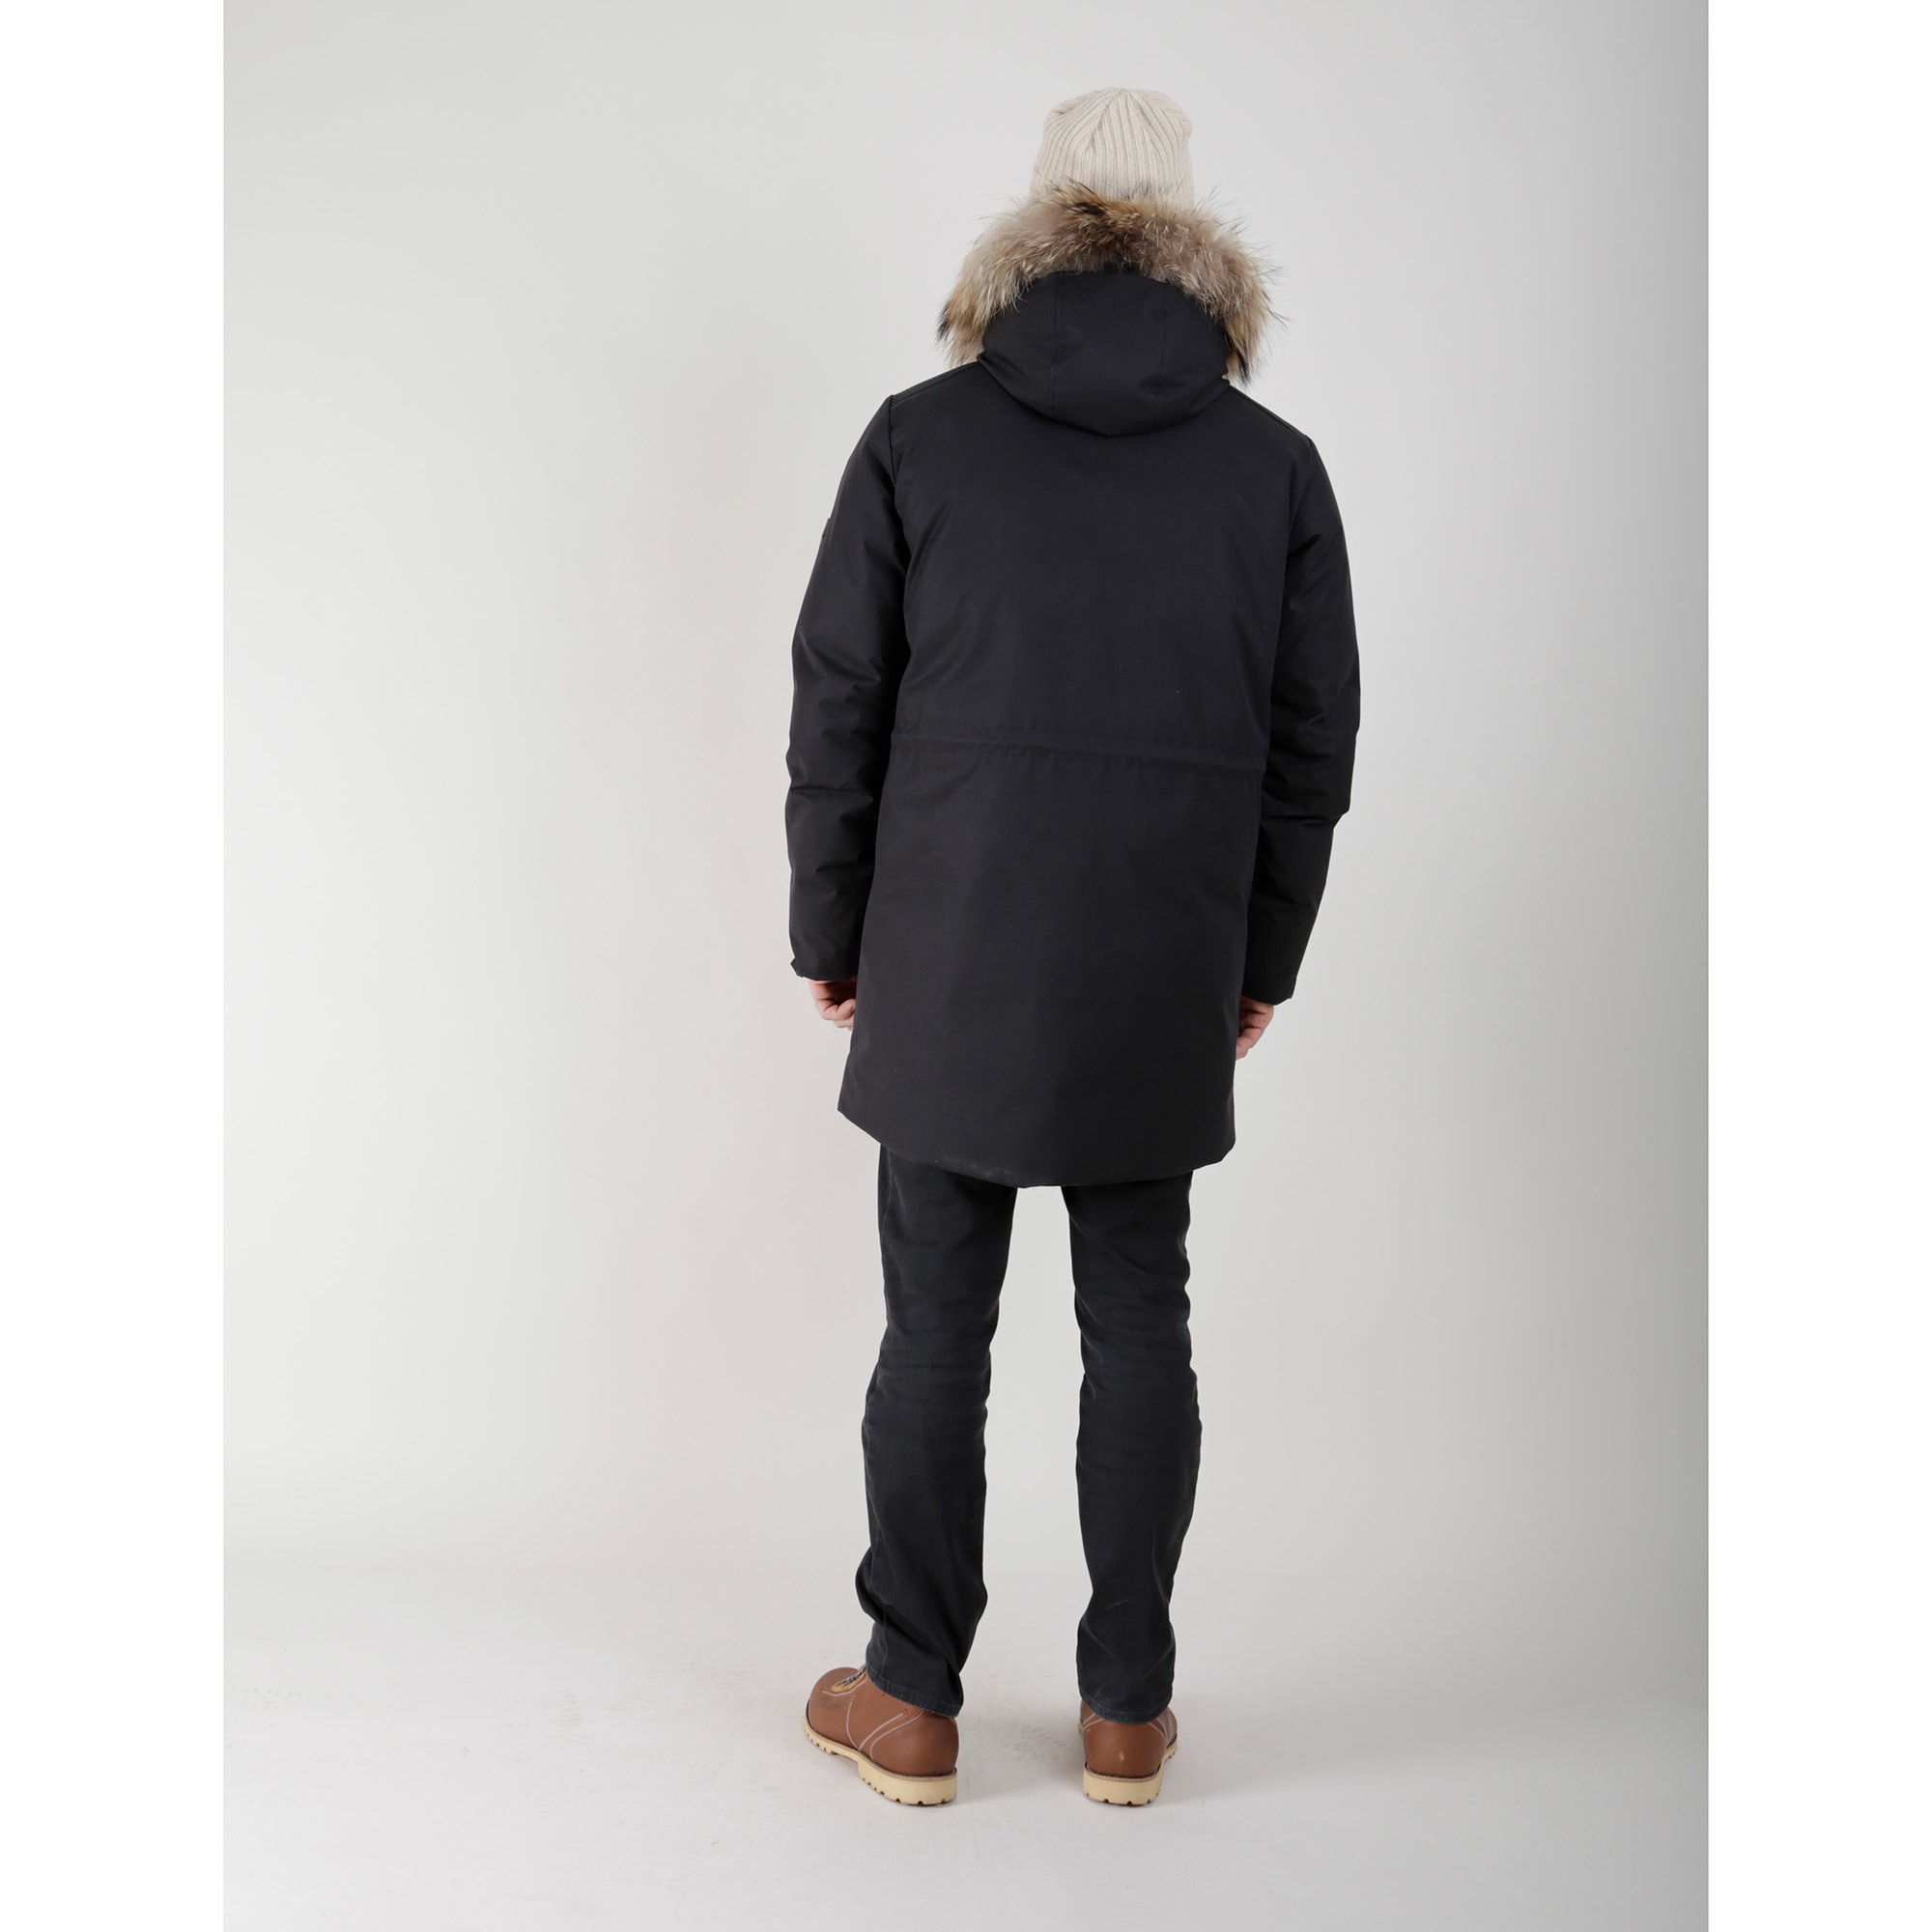 Powderhorn Teton Wind River Parka